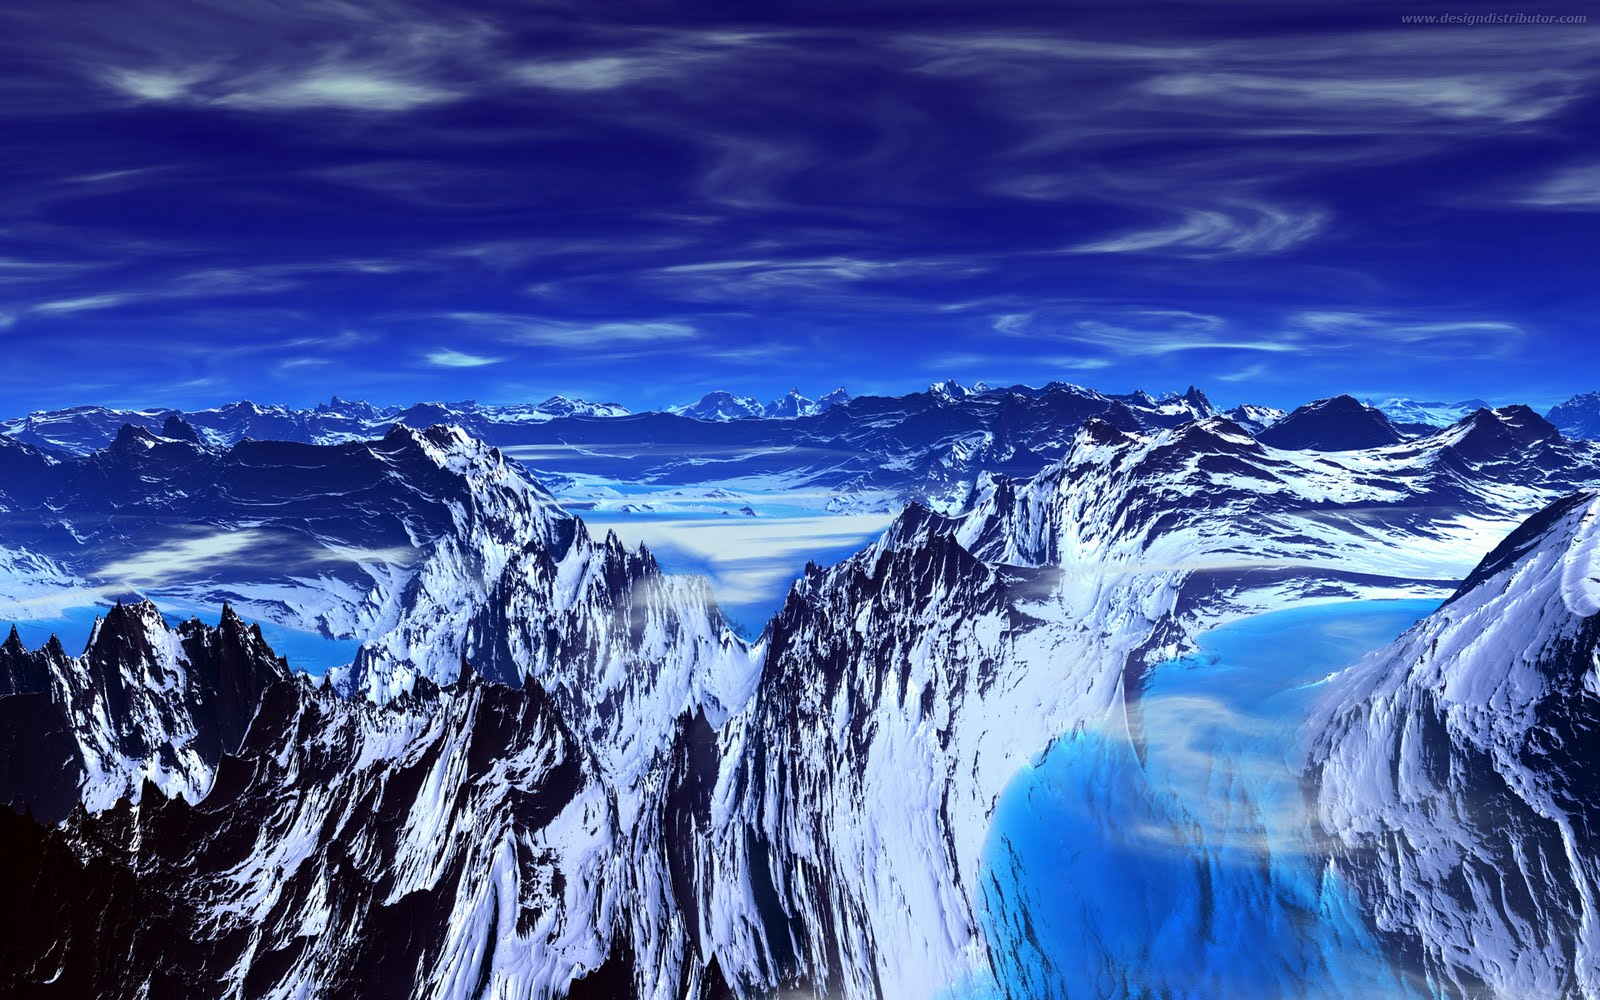 Amazing Wallpaper Mountain National Geographic - national+geographic+desktops+1  Picture_434891.jpg